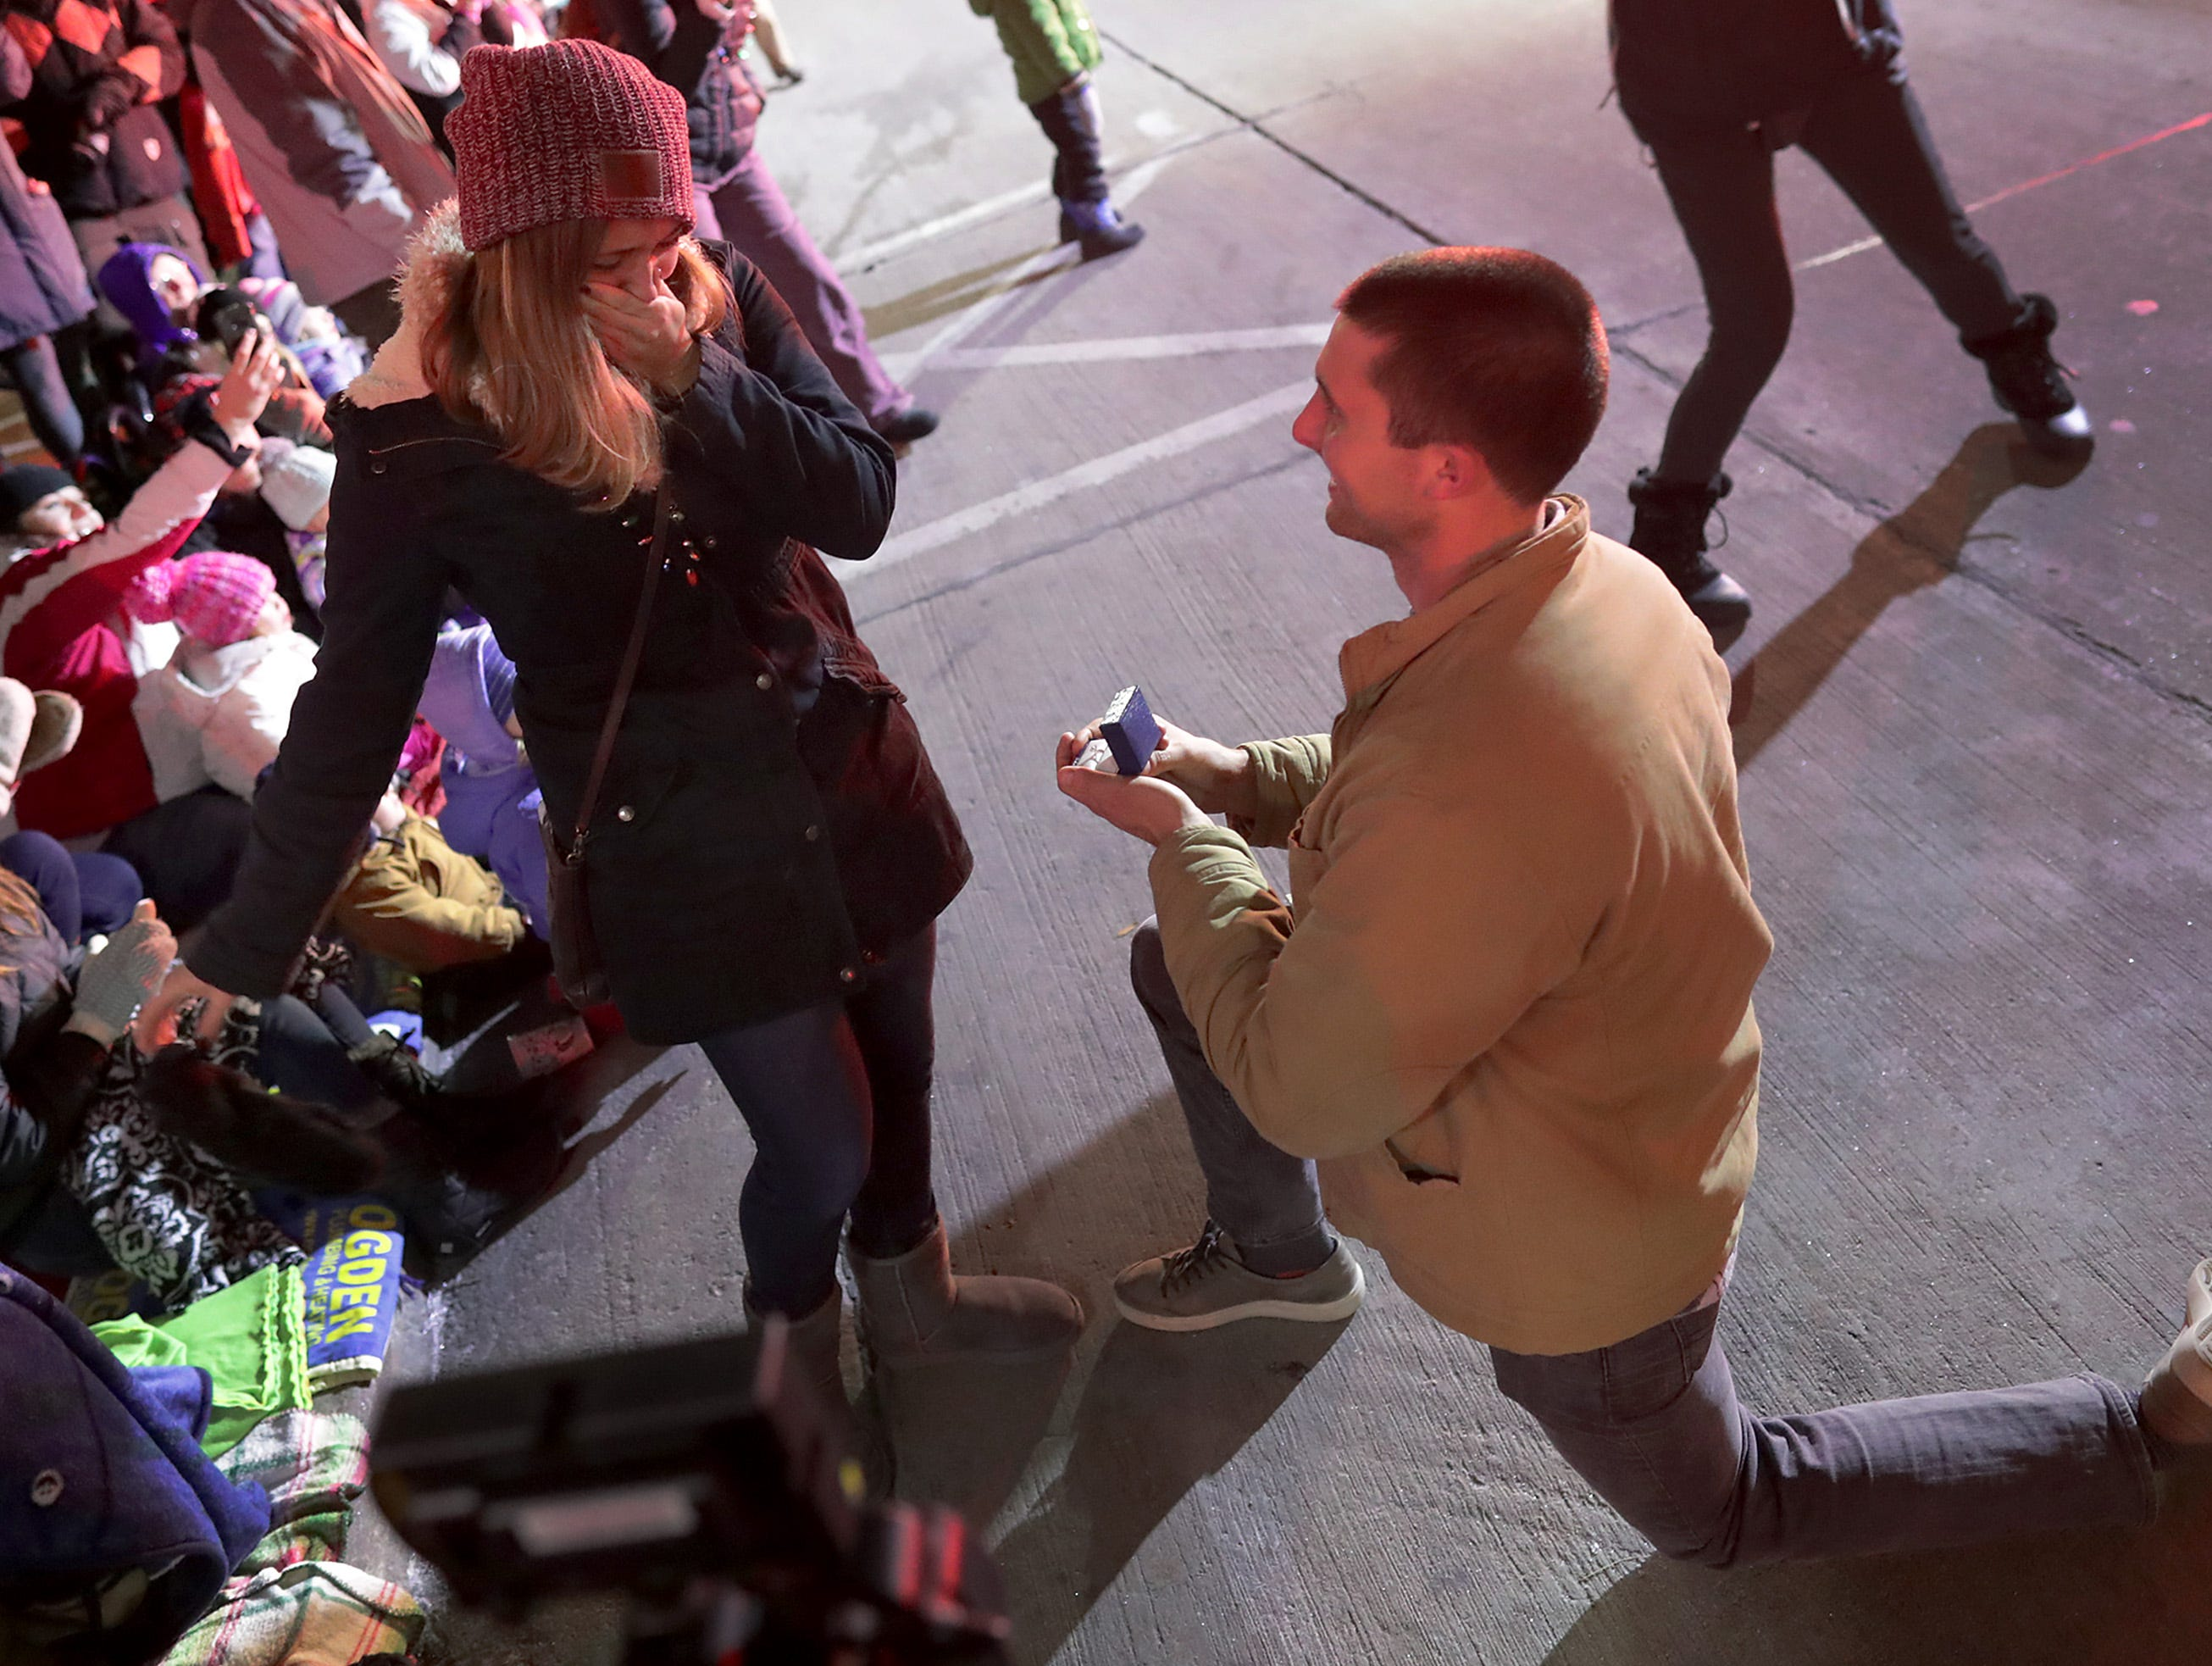 Appleton firefighter Bryce Sternhagen proposes to Appleton West teacher Samantha Gucci during the 48th Annual Downtown Appleton Christmas Parade on Tuesday, Nov. 20, 2018 in Appleton, Wis. Sternhagen left the parade to propose and she said yes.Wm. Glasheen/USA TODAY NETWORK-Wisconsin.